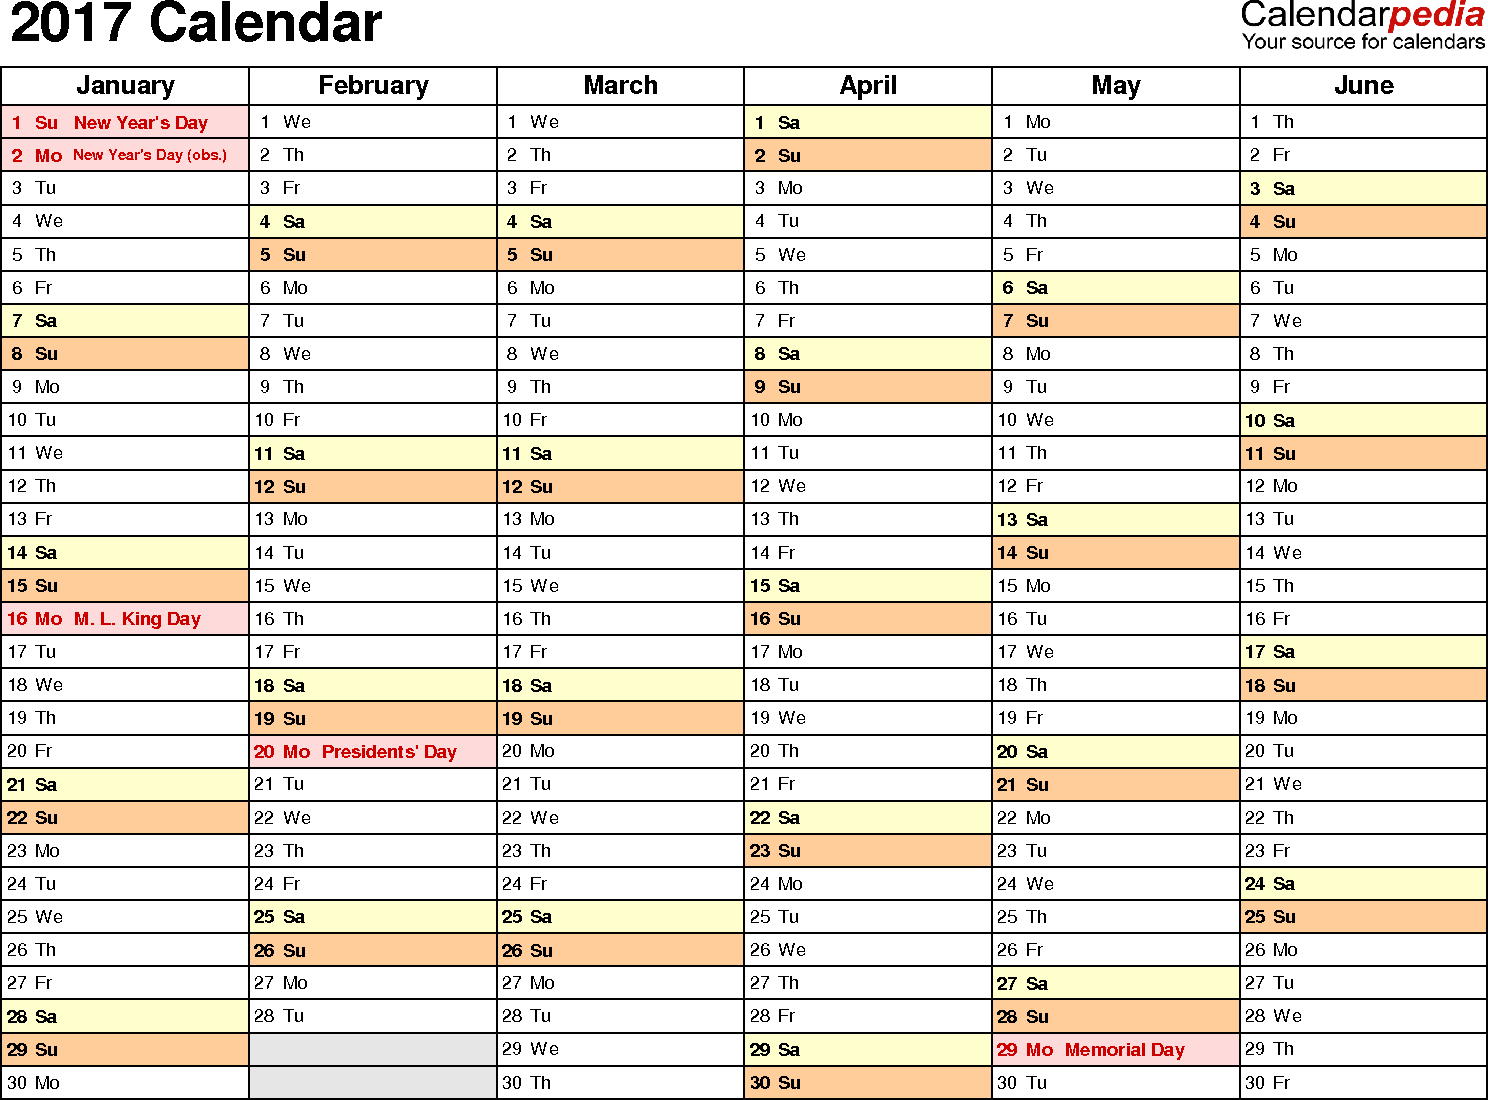 Ediblewildsus  Remarkable  Calendar  Download  Free Printable Excel Templates Xls With Heavenly Template   Calendar For Excel Months Horizontally  Pages Landscape Orientation With Delectable Less Than Or Equal To In Excel Also How To Insert Trendline In Excel In Addition Making A Graph In Excel And Excel Visual Basic As Well As How To Delete Extra Rows In Excel Additionally Plot Equation In Excel From Calendarpediacom With Ediblewildsus  Heavenly  Calendar  Download  Free Printable Excel Templates Xls With Delectable Template   Calendar For Excel Months Horizontally  Pages Landscape Orientation And Remarkable Less Than Or Equal To In Excel Also How To Insert Trendline In Excel In Addition Making A Graph In Excel From Calendarpediacom